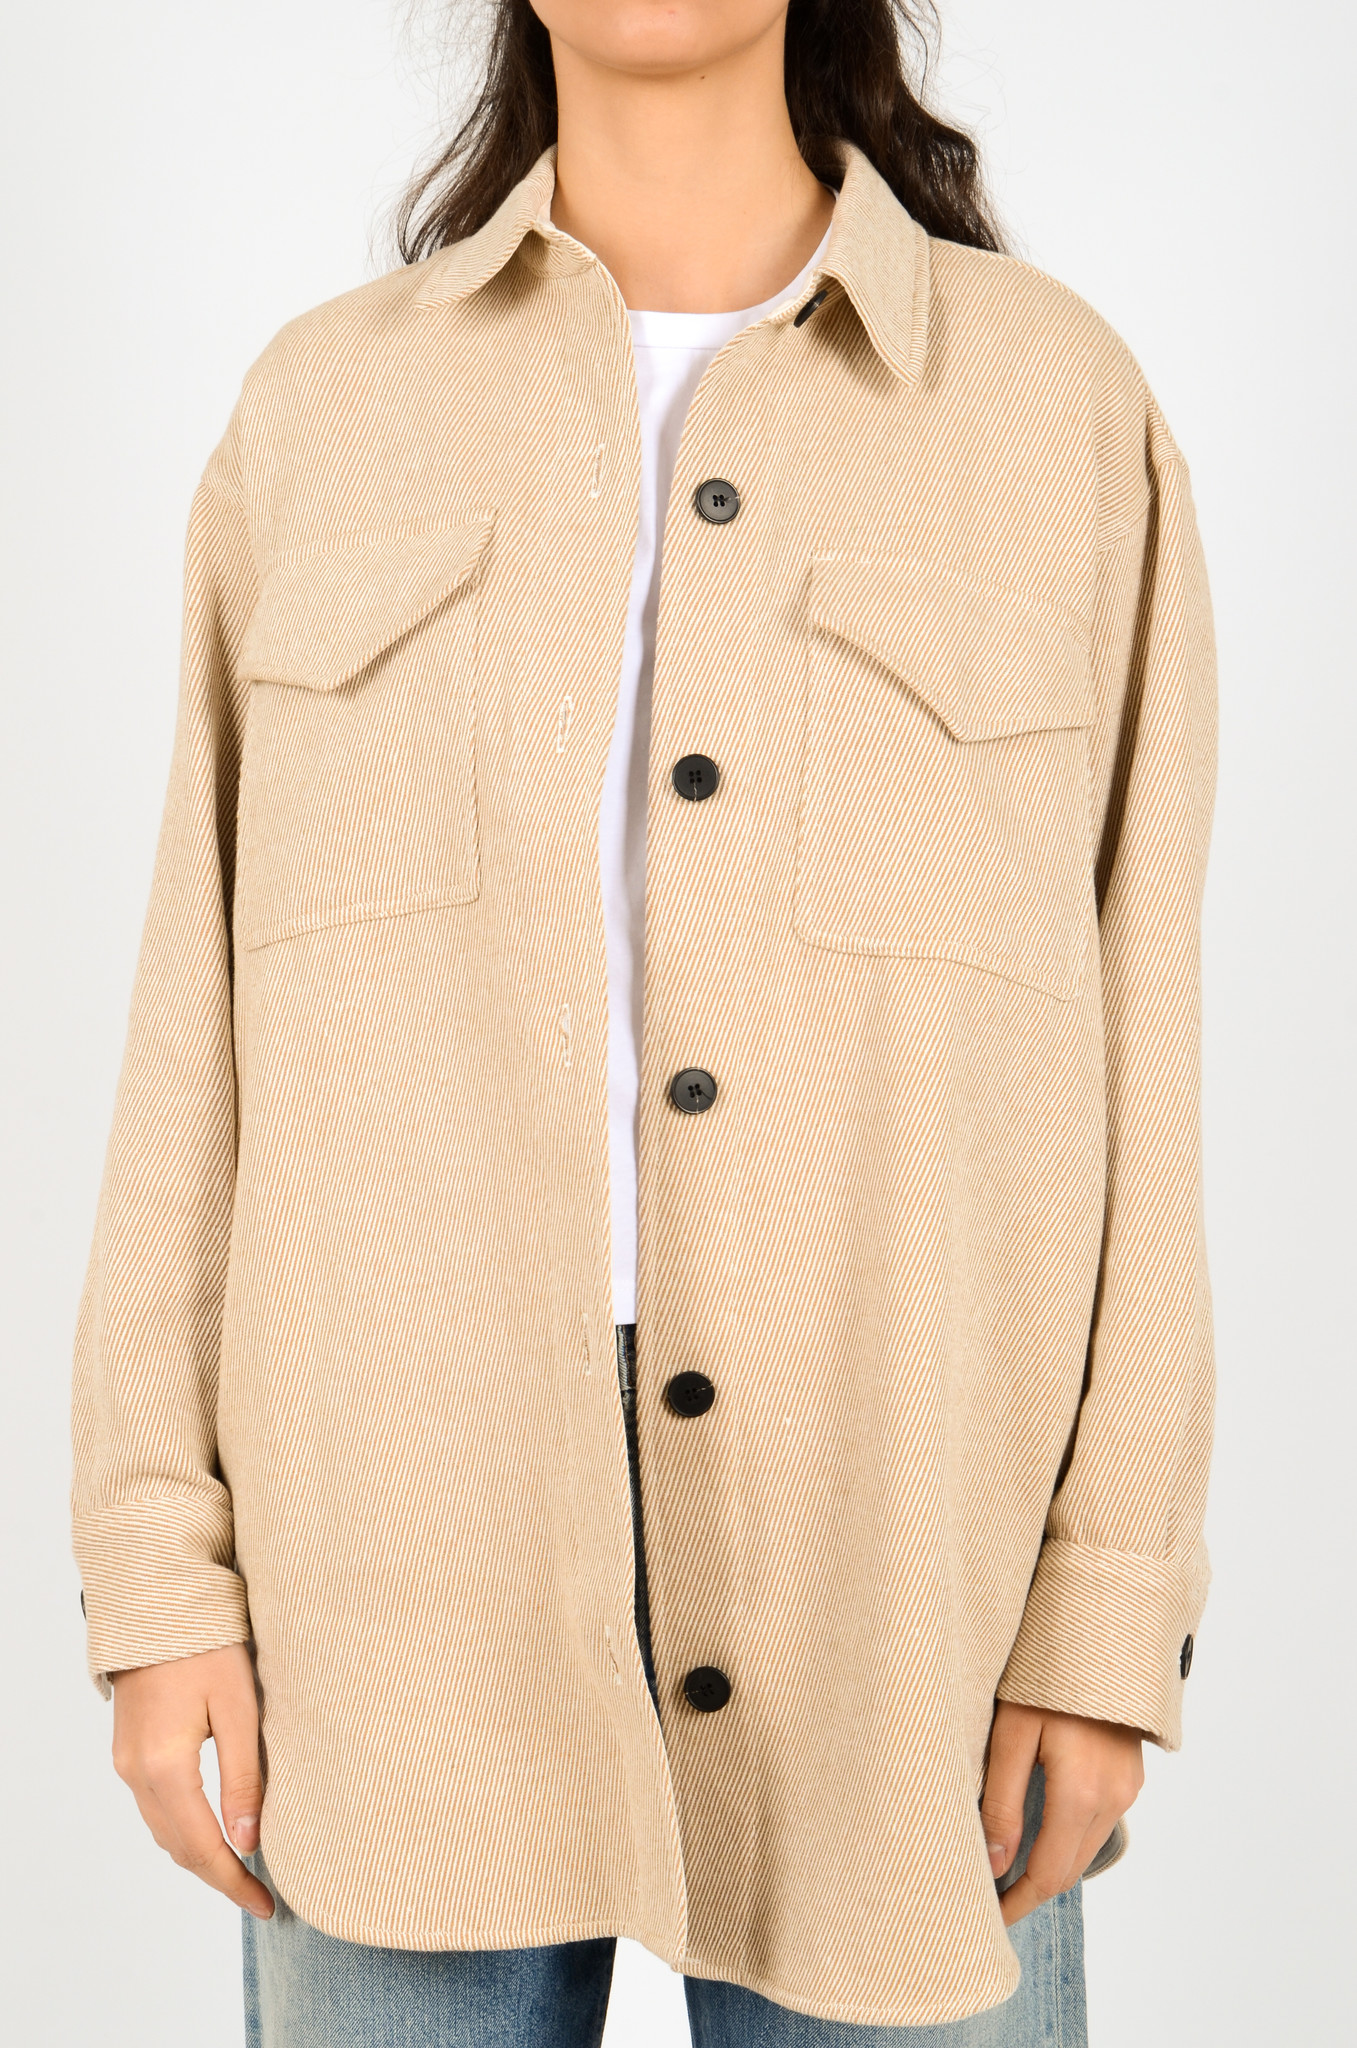 PALERMO SHIRT COAT IN CAMEL-1